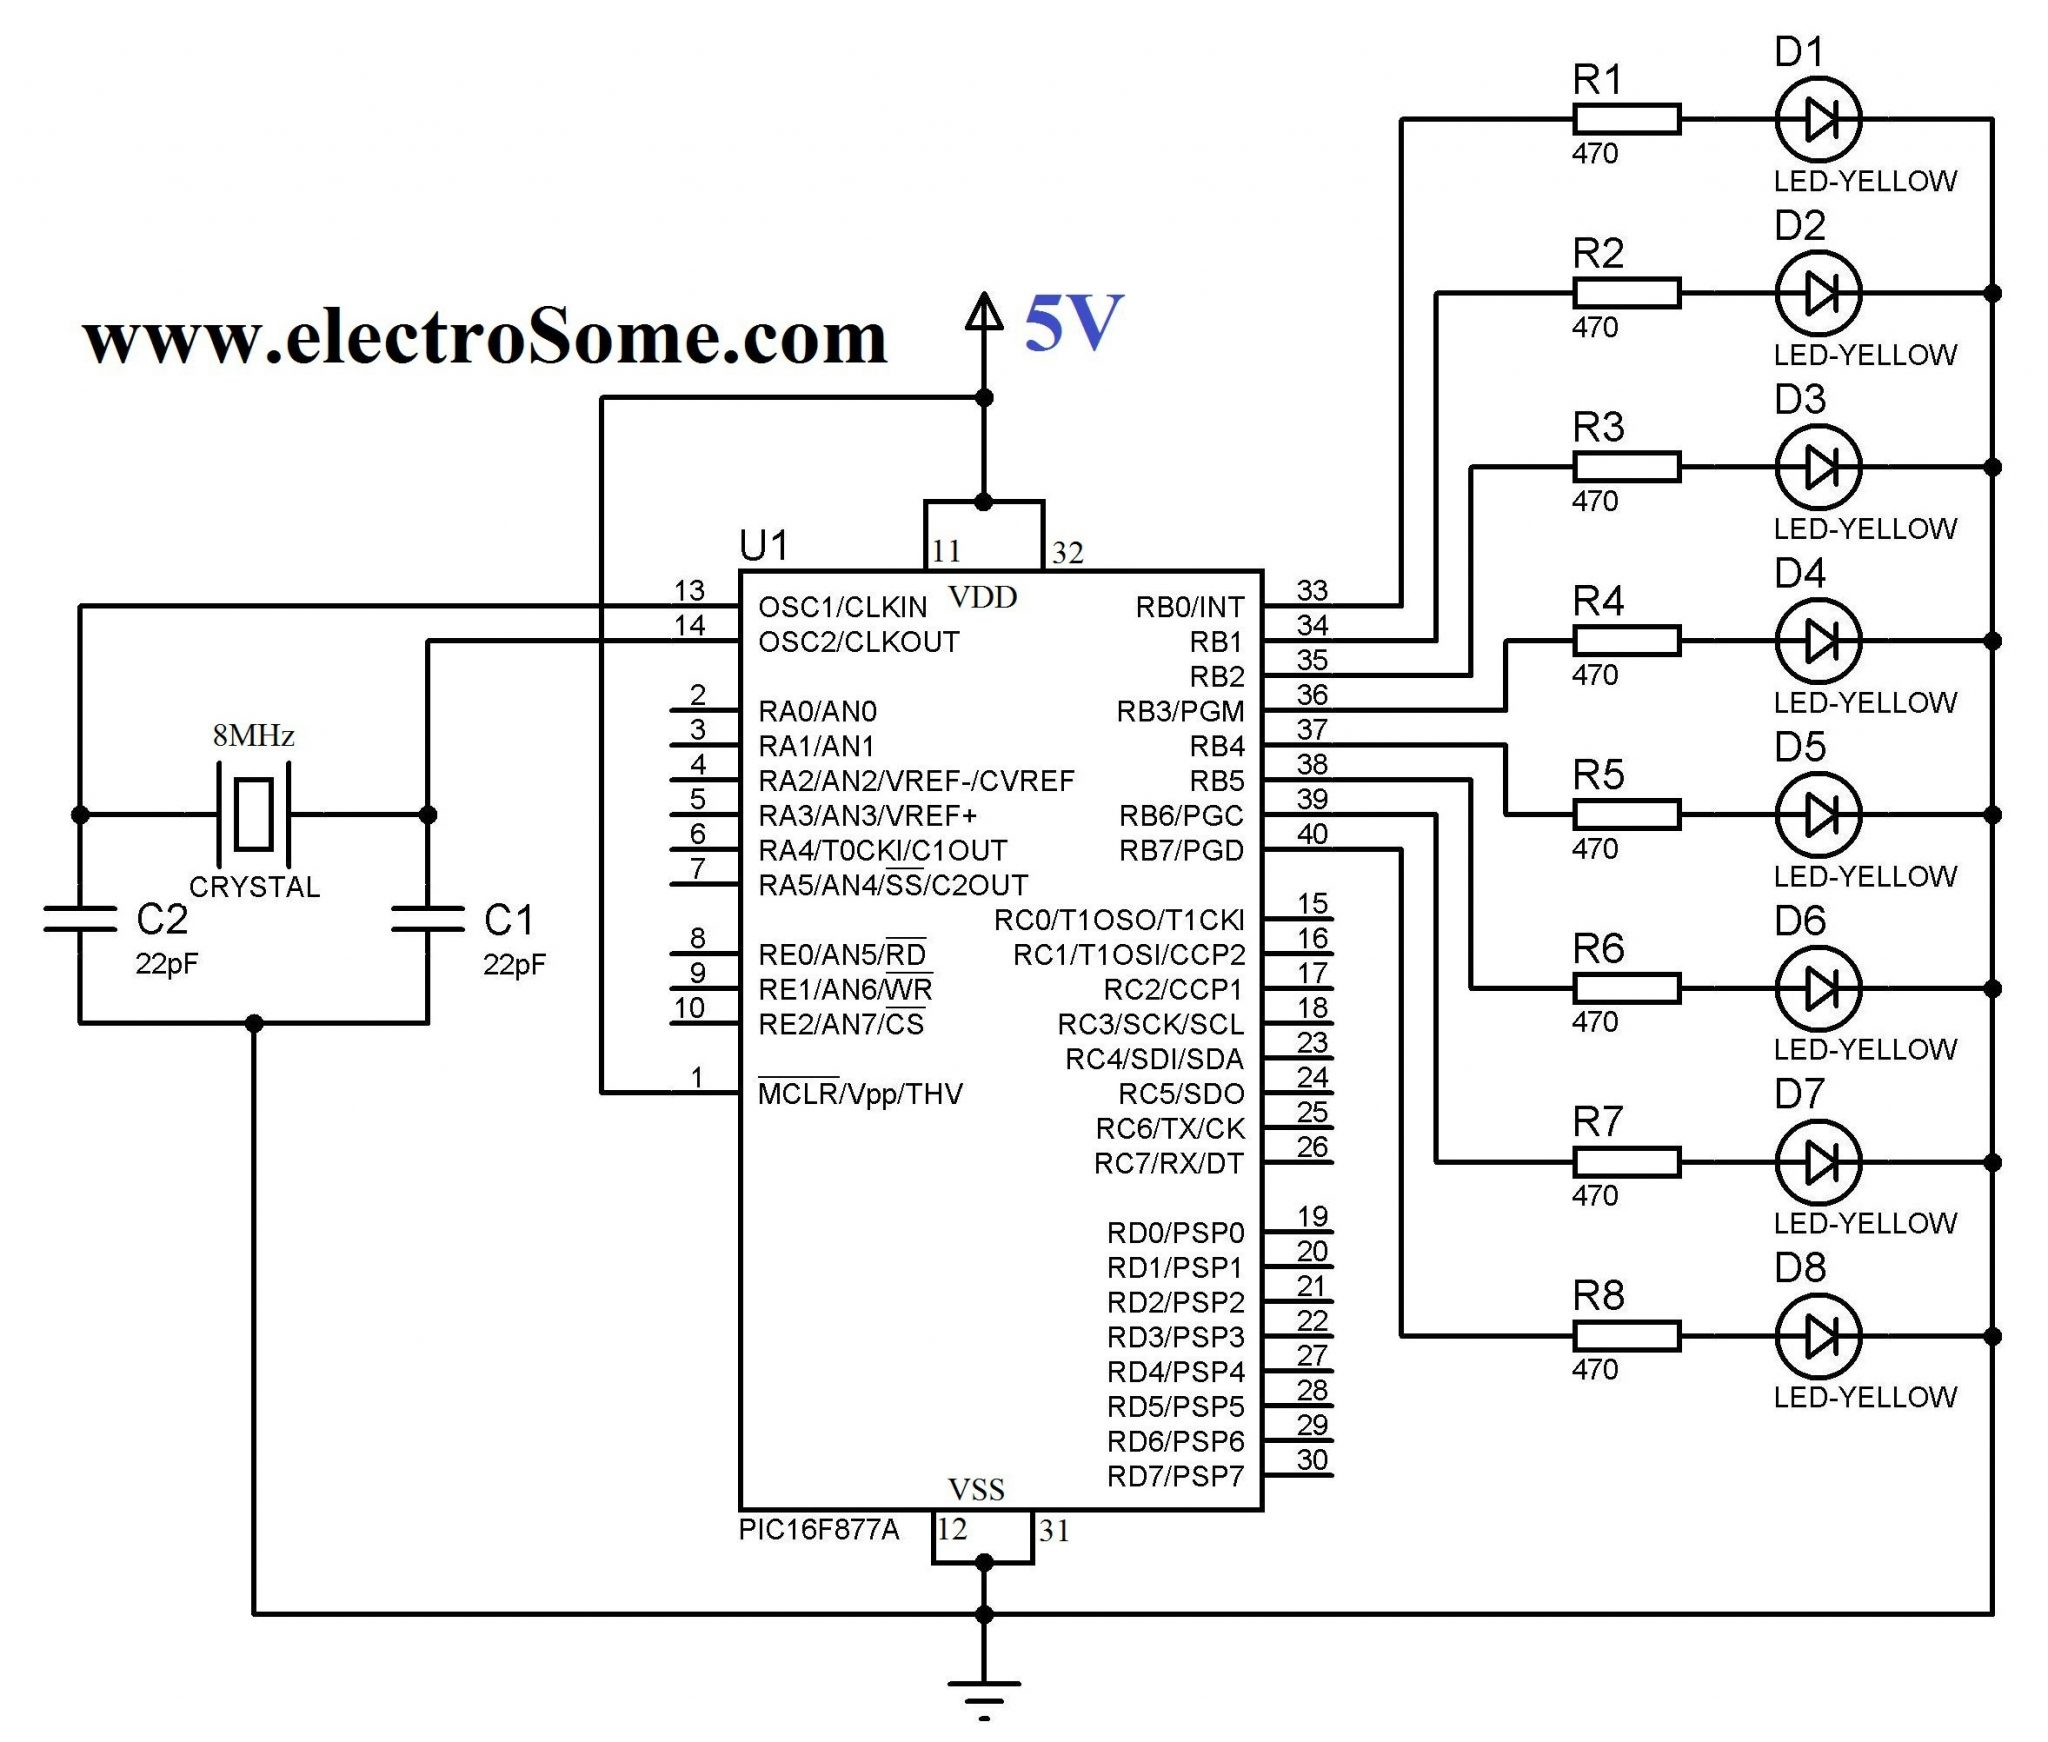 Blinking led using pic microcontroller hi tech c compiler and mplab blinking led using pic microcontroller circuit diagram ccuart